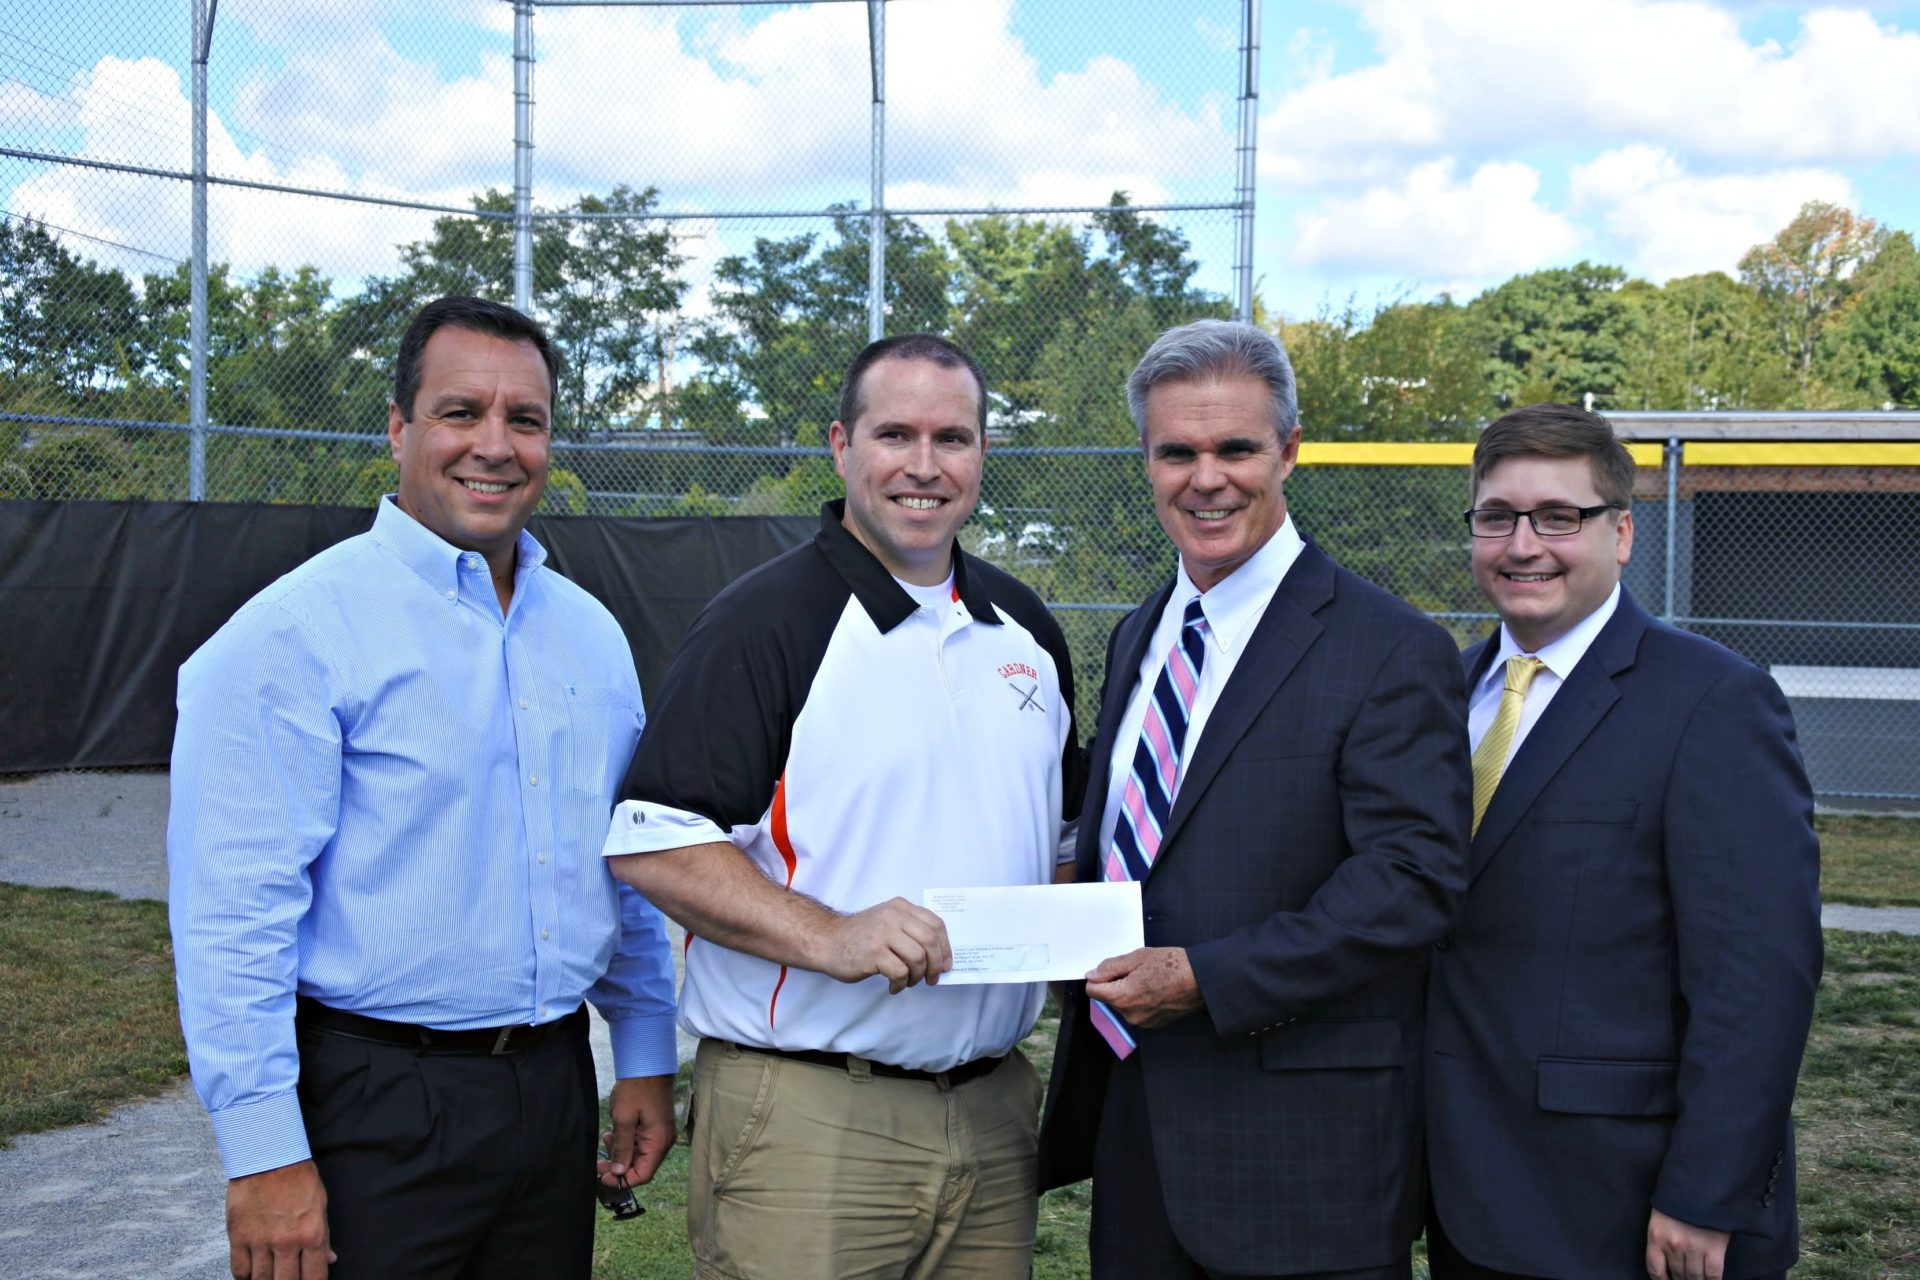 District Attorney Joseph D. Early Jr. presents a check from his county's drug forfeiture funds to Gardner Youth Baseball & Softball League to help improve their field. The league's president, Kevin Robillard, accepted the check and they were joined by former Gardner Mayor Mark Hawke and state Rep. Jonathan Zlotnik. (Photo published on Worcester County District Attorney's Office website in 2016)